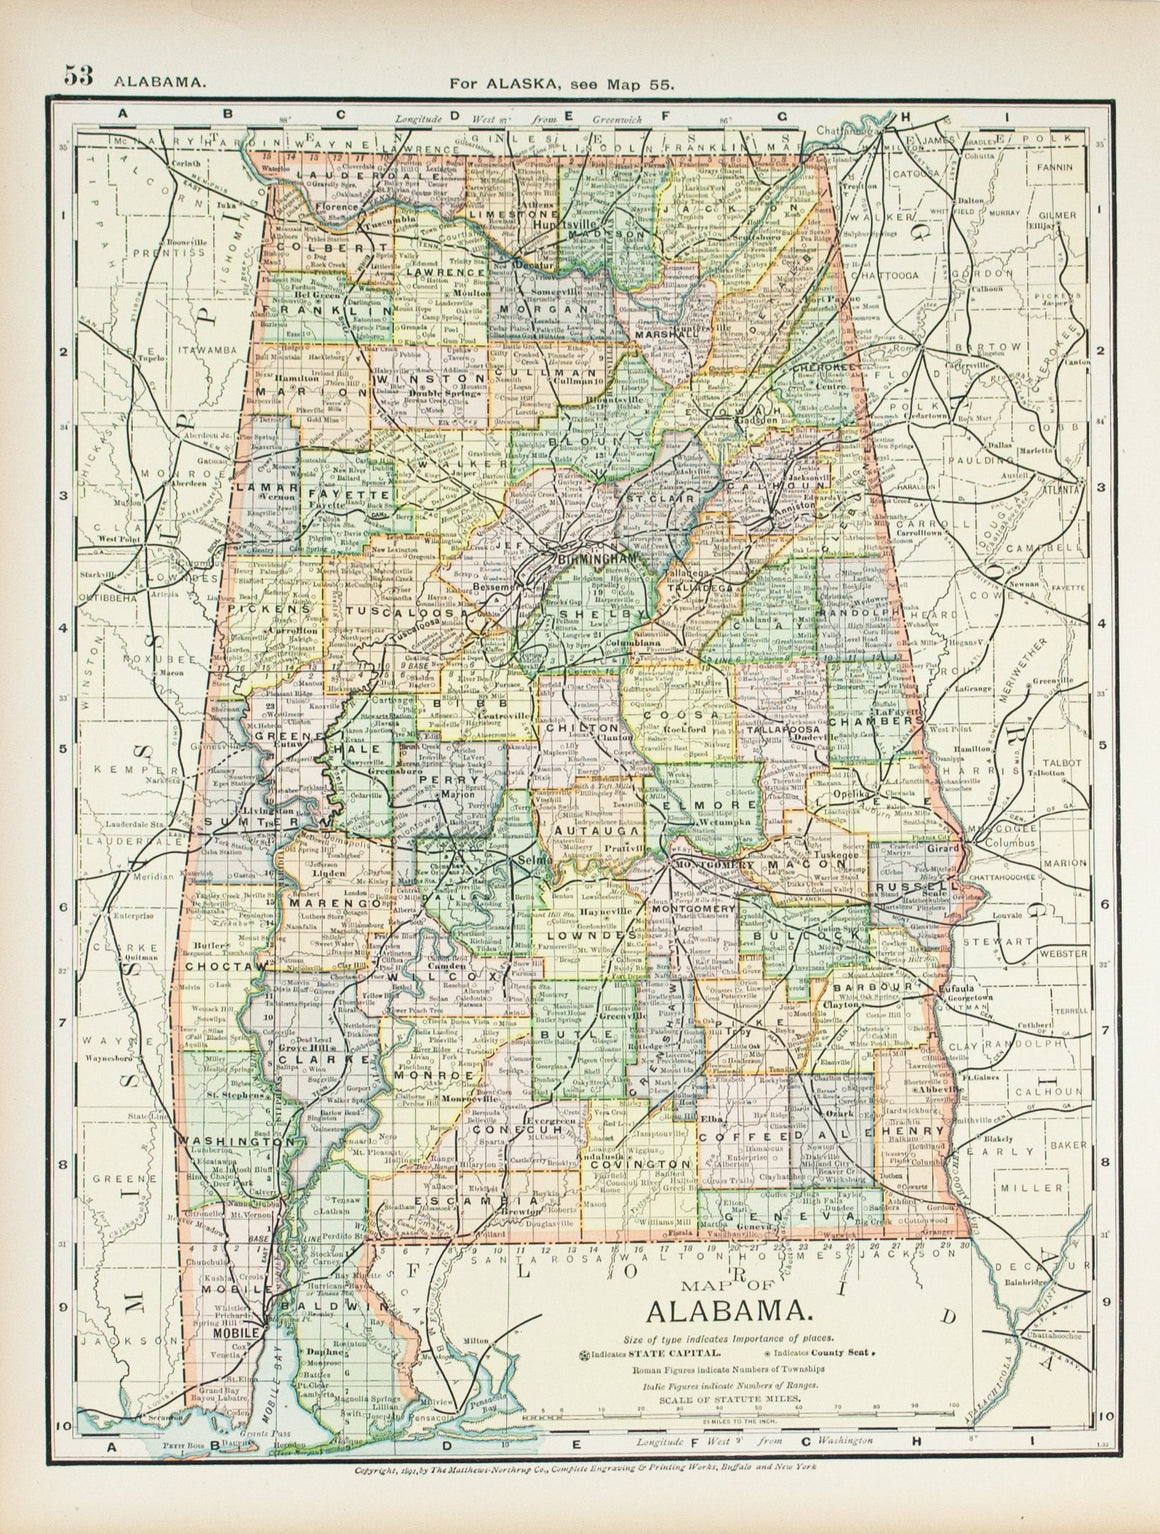 1891 Map of Alabama